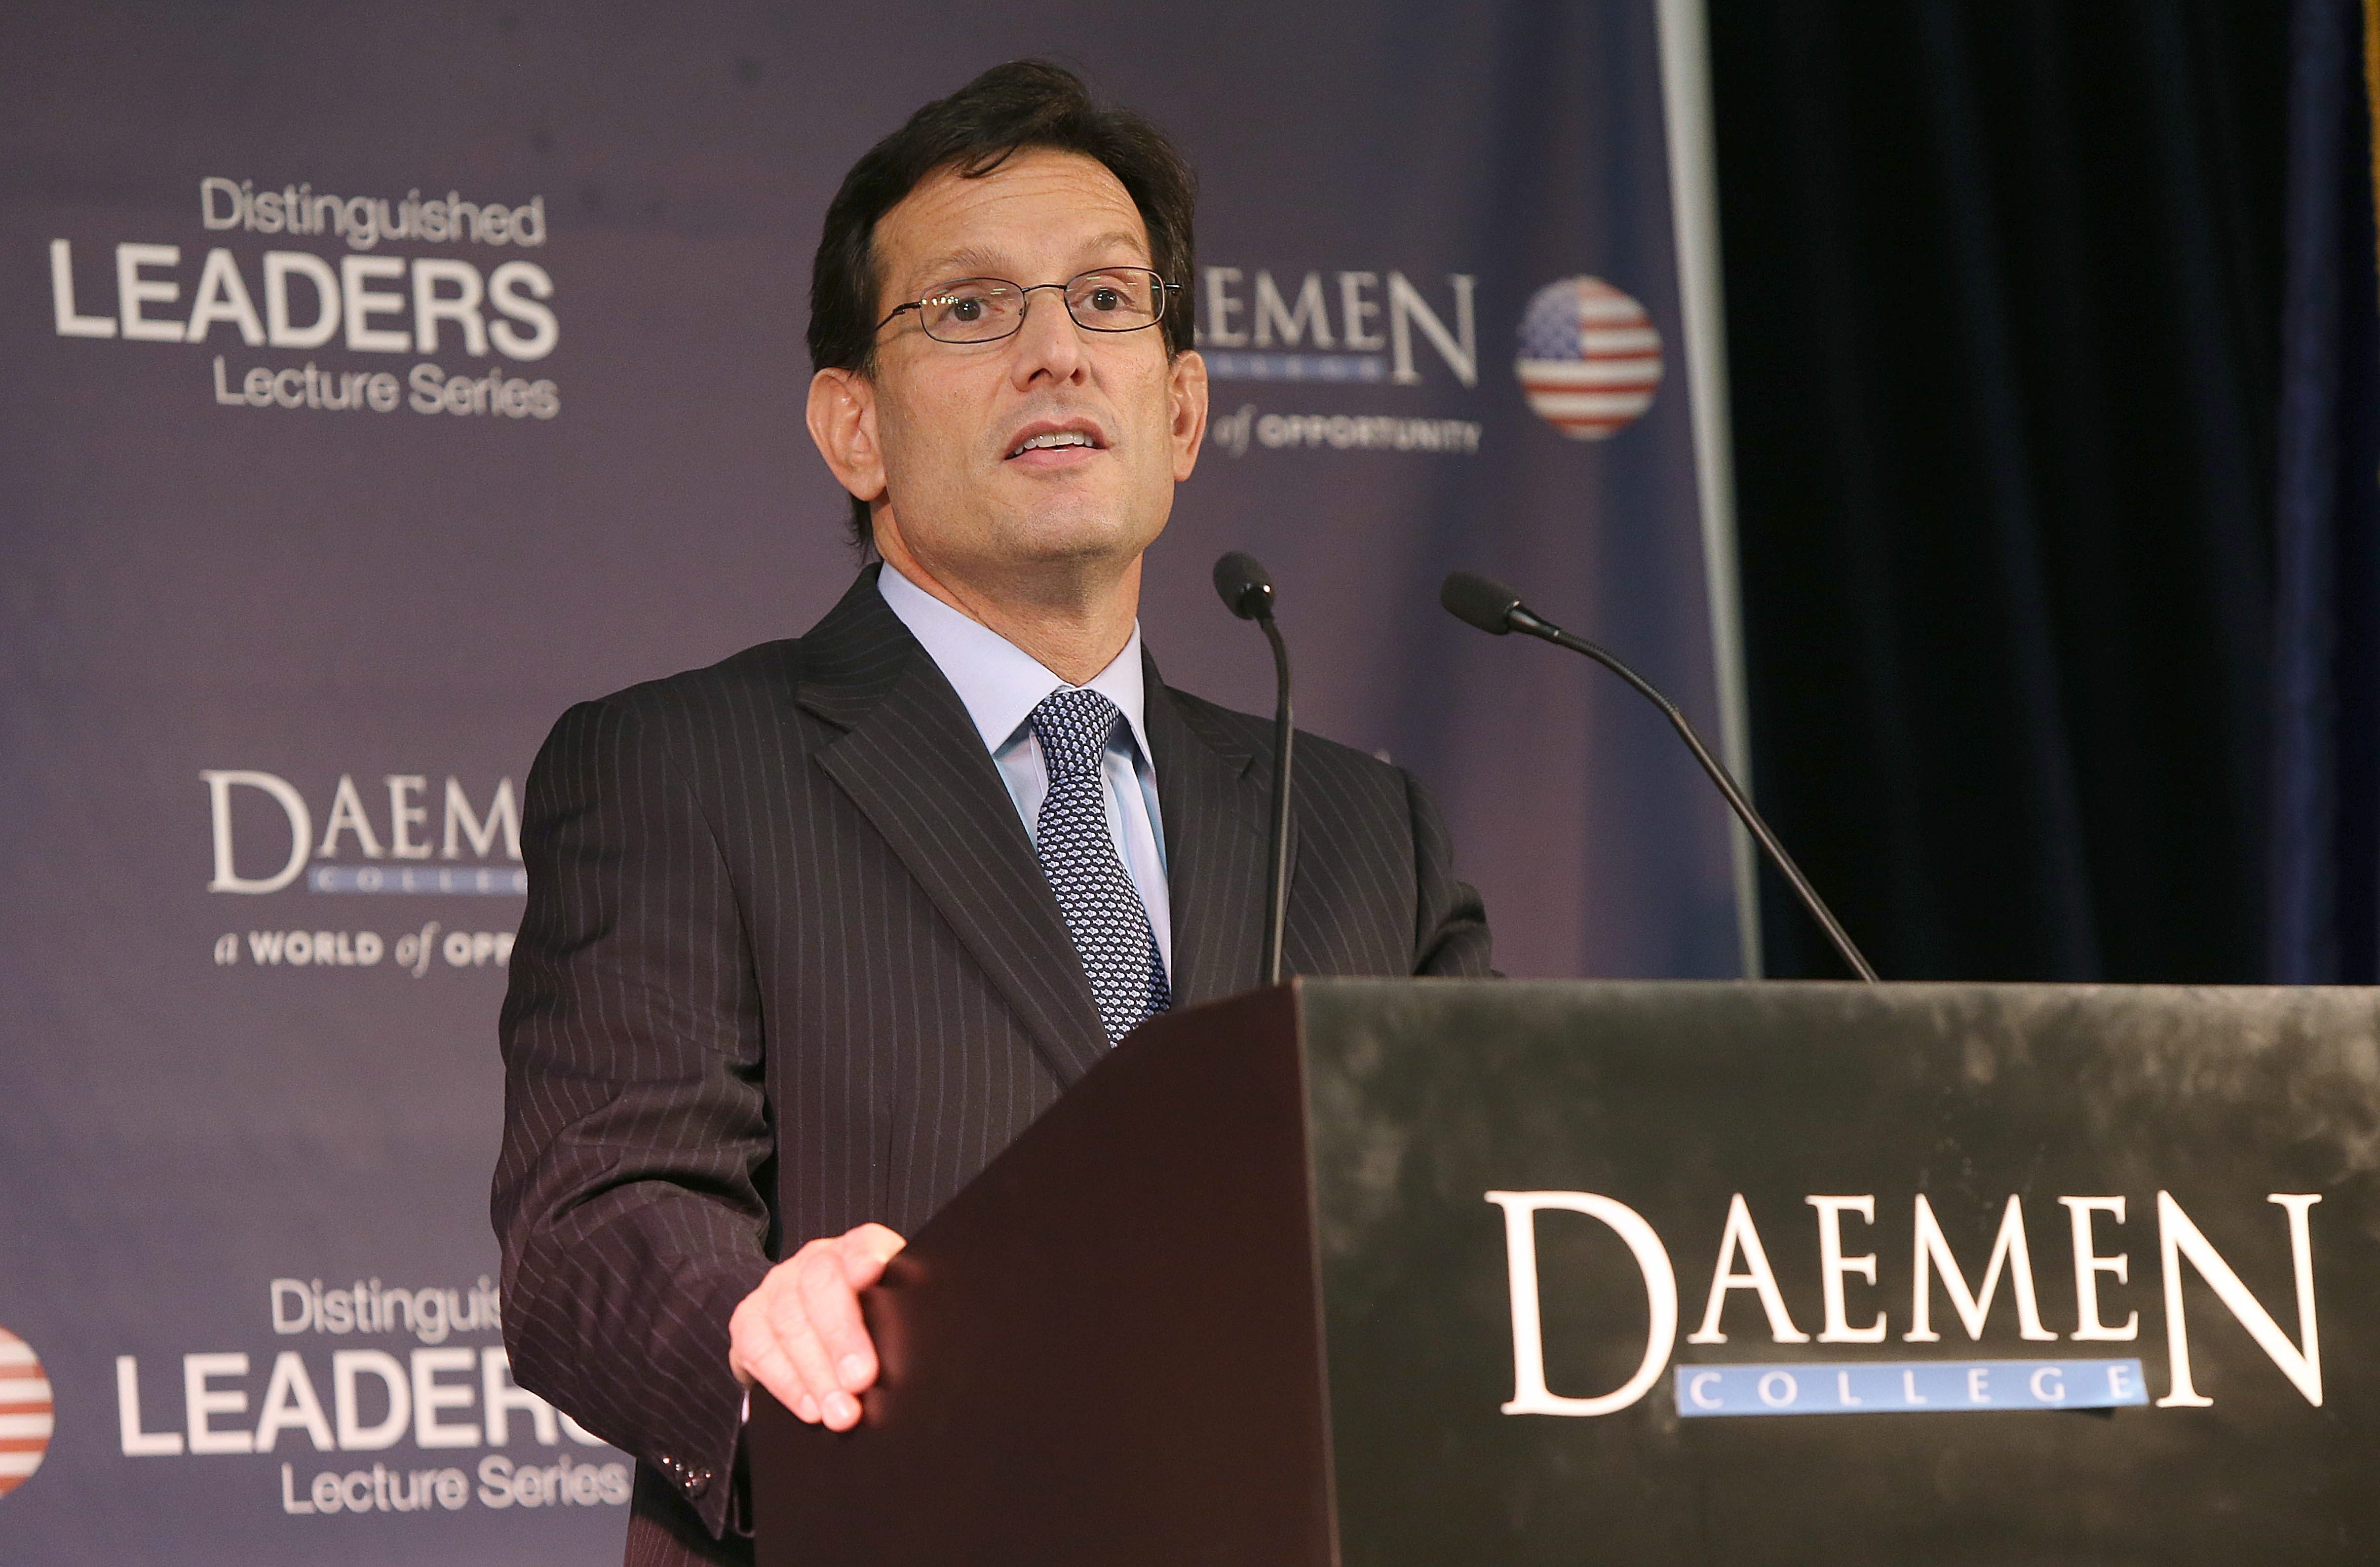 House Majority Leader Eric Cantor, R-Va., speaks in the Wick Center Social Room at Daemen College in Amherst Monday as part of the college's distinguished Leaders Lecture Series.